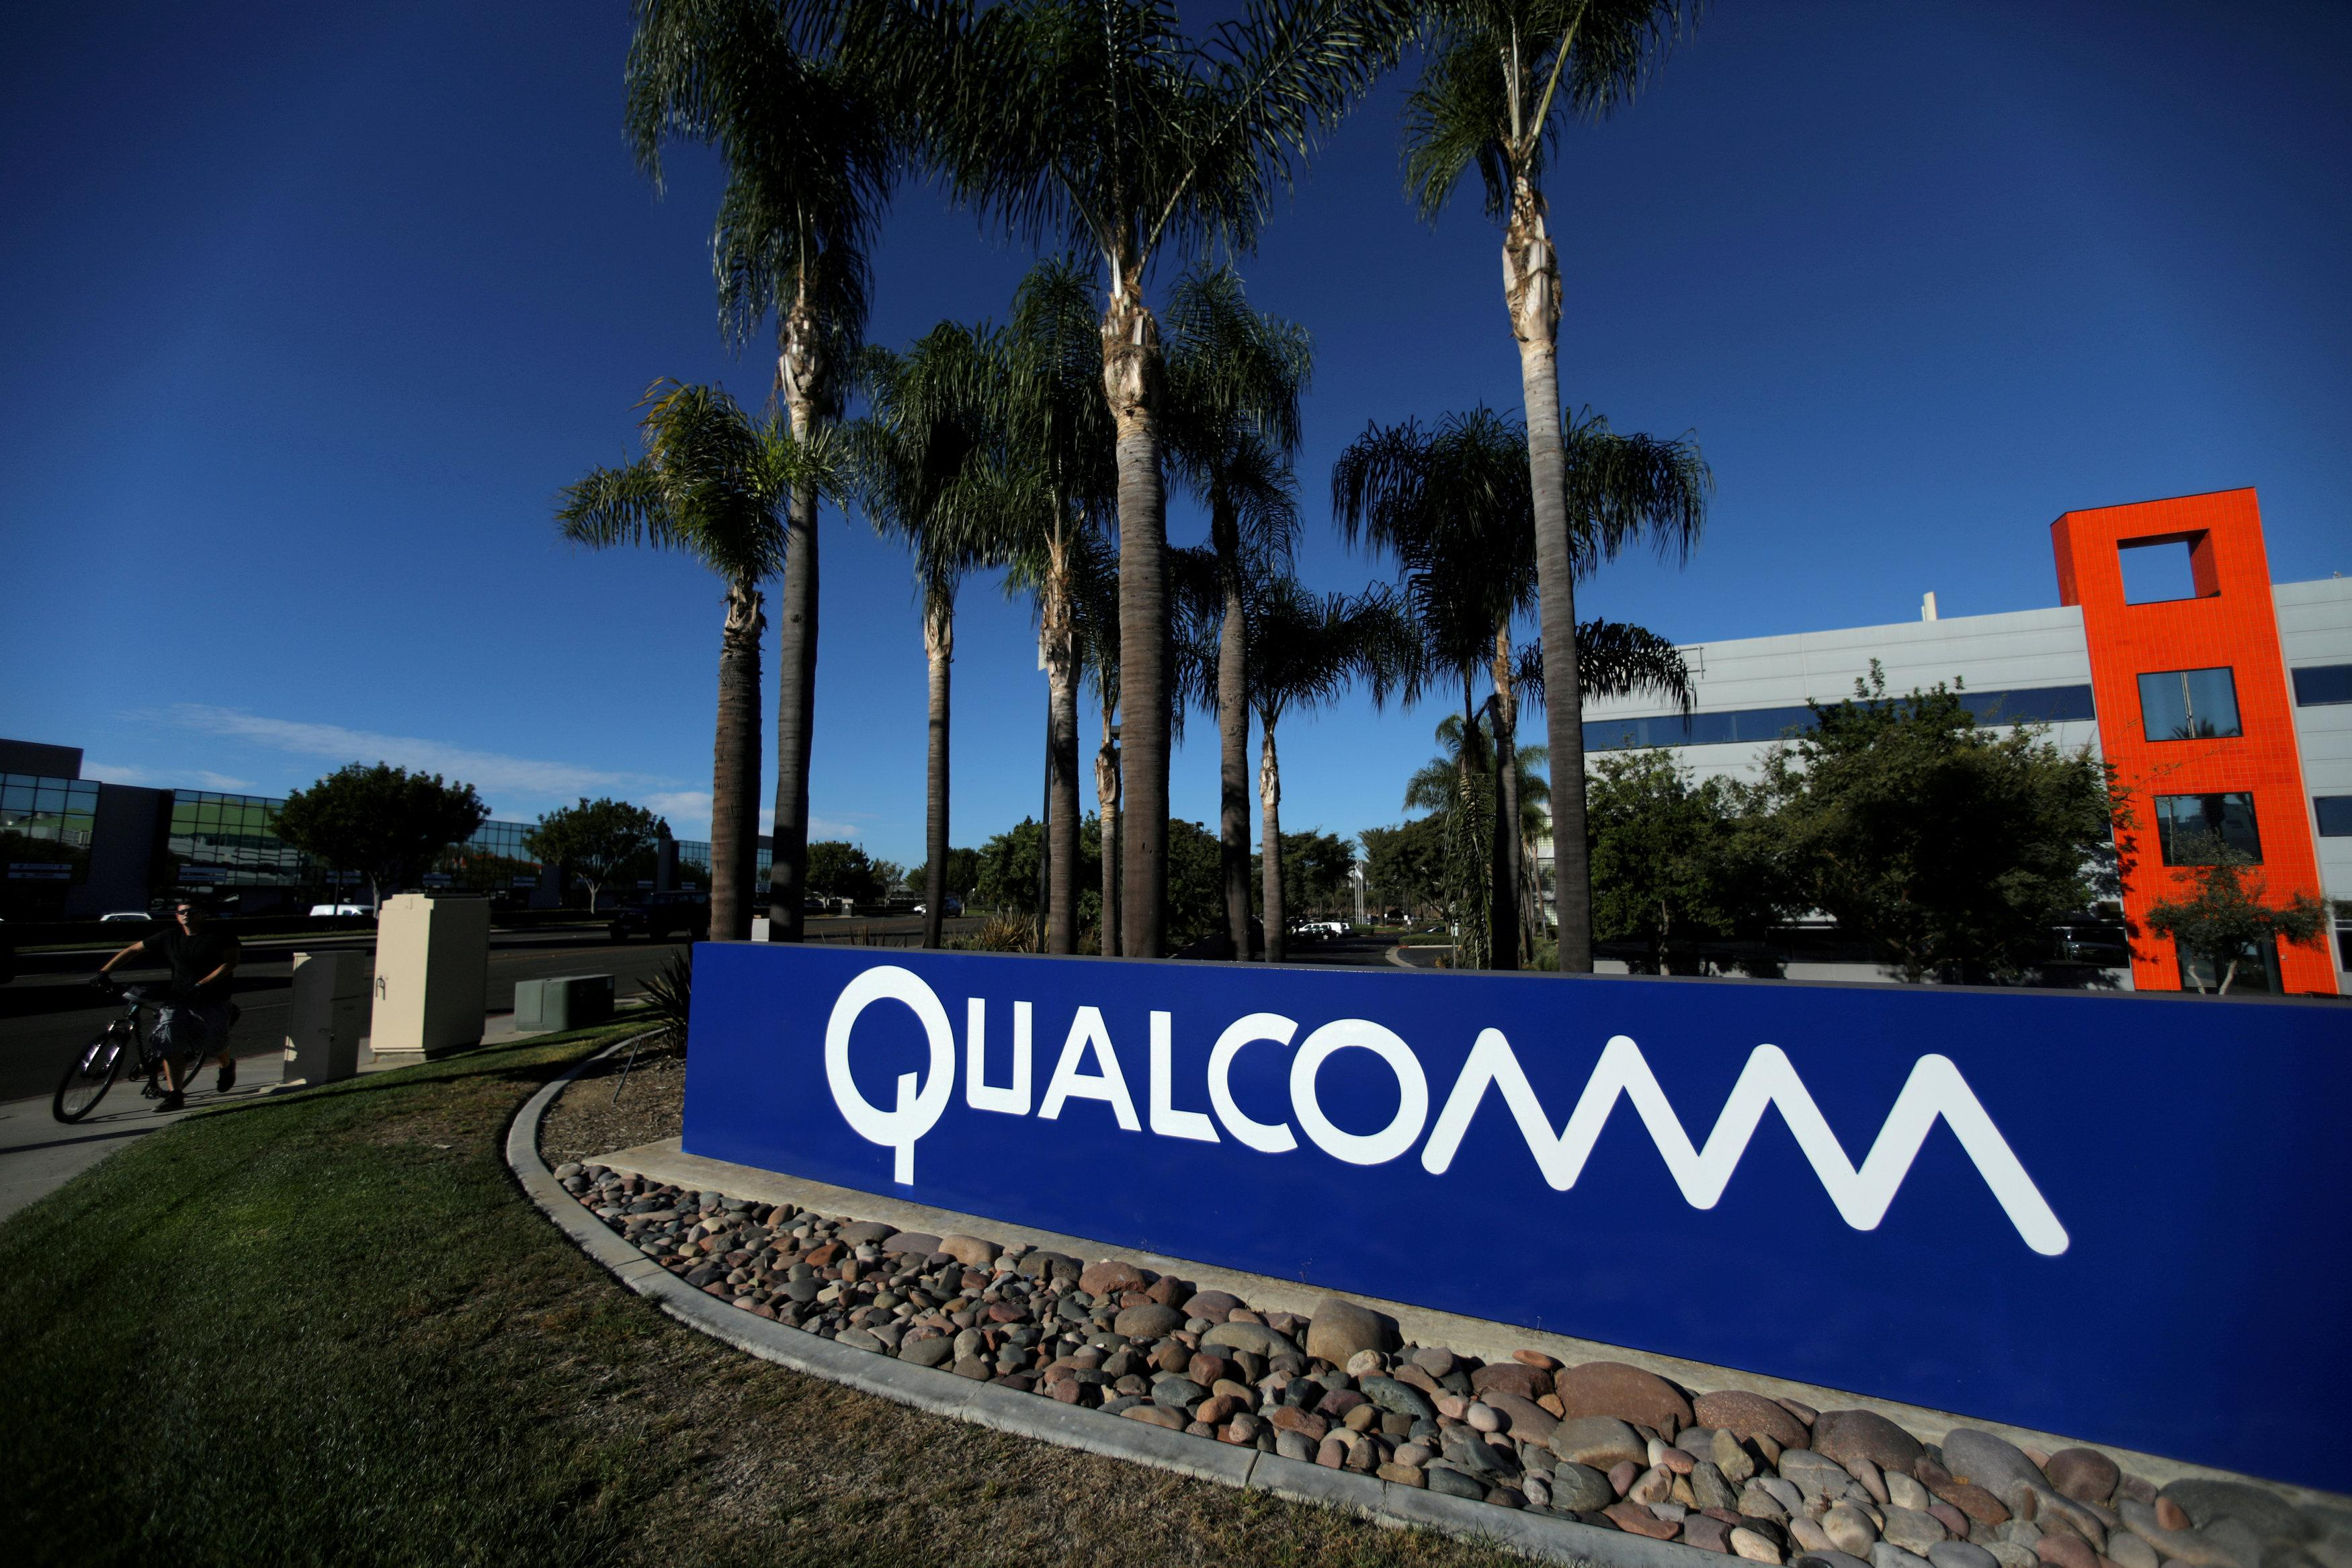 A sign on the Qualcomm campus is seen in San Diego, California, U.S. November 6, 2017. Mike Blake